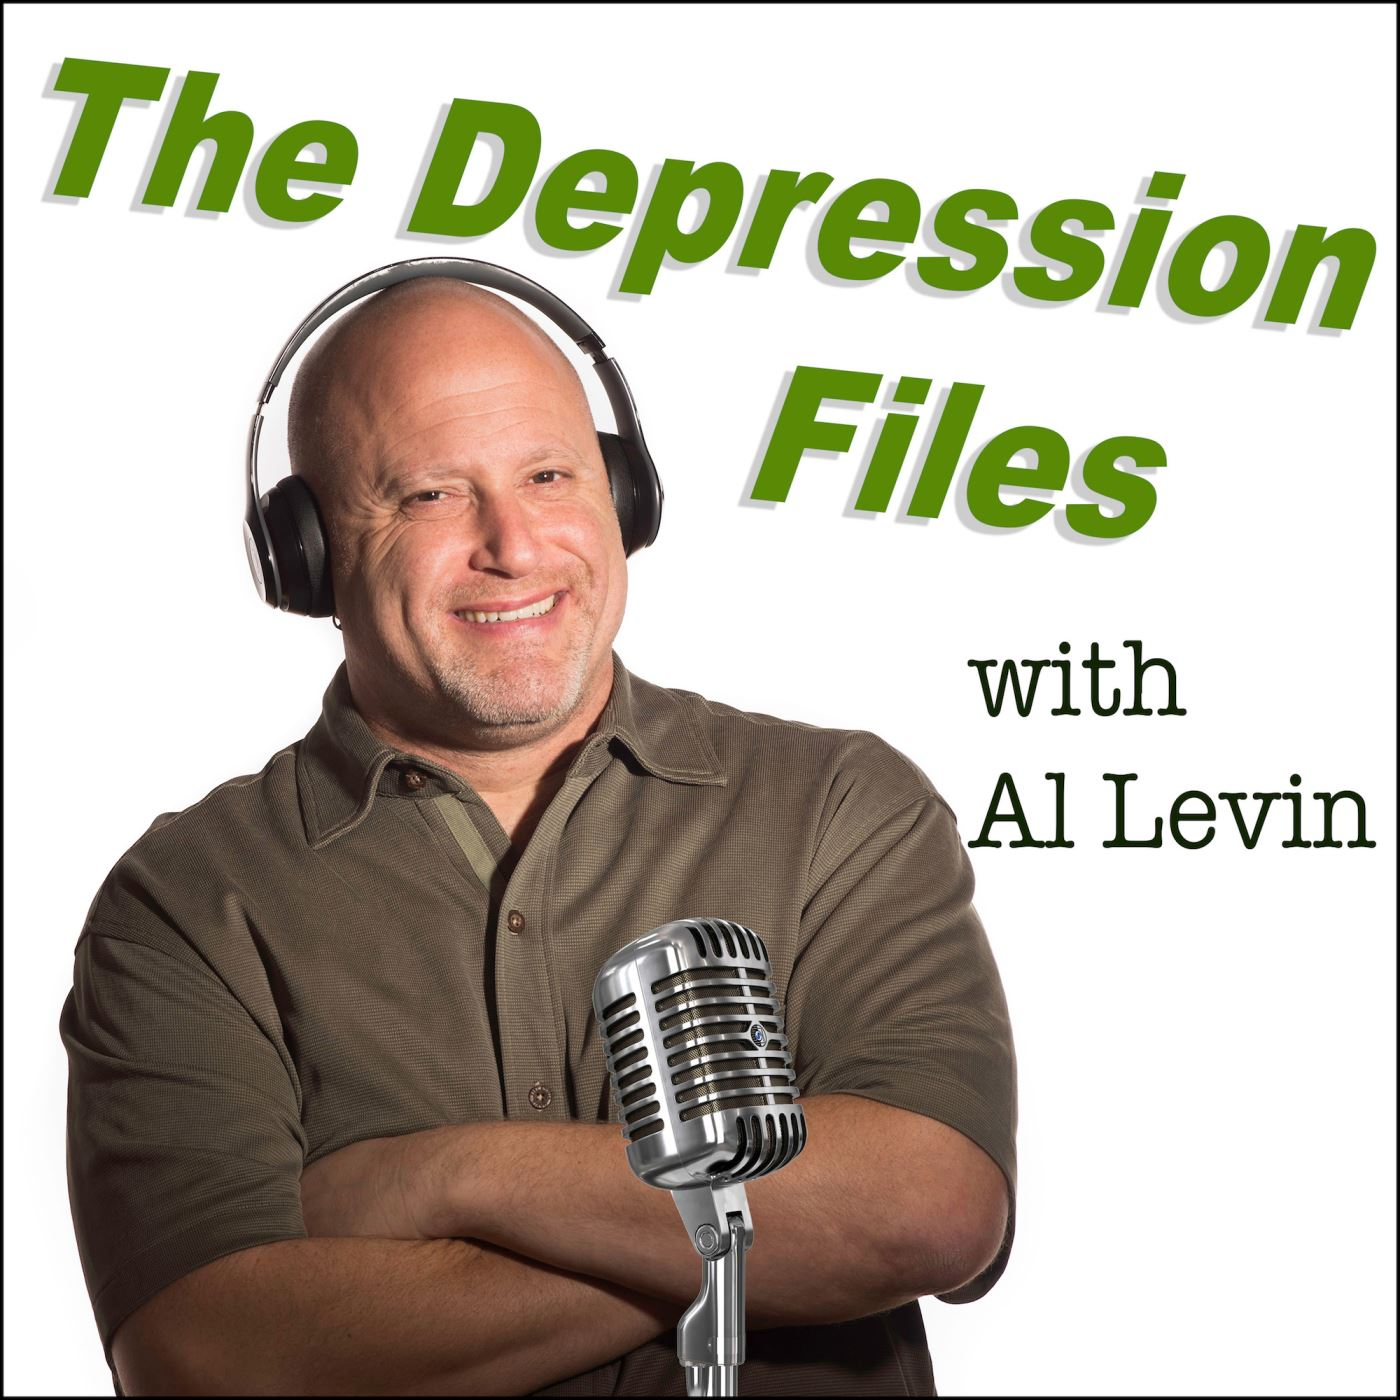 The Depression Files with Al Levin